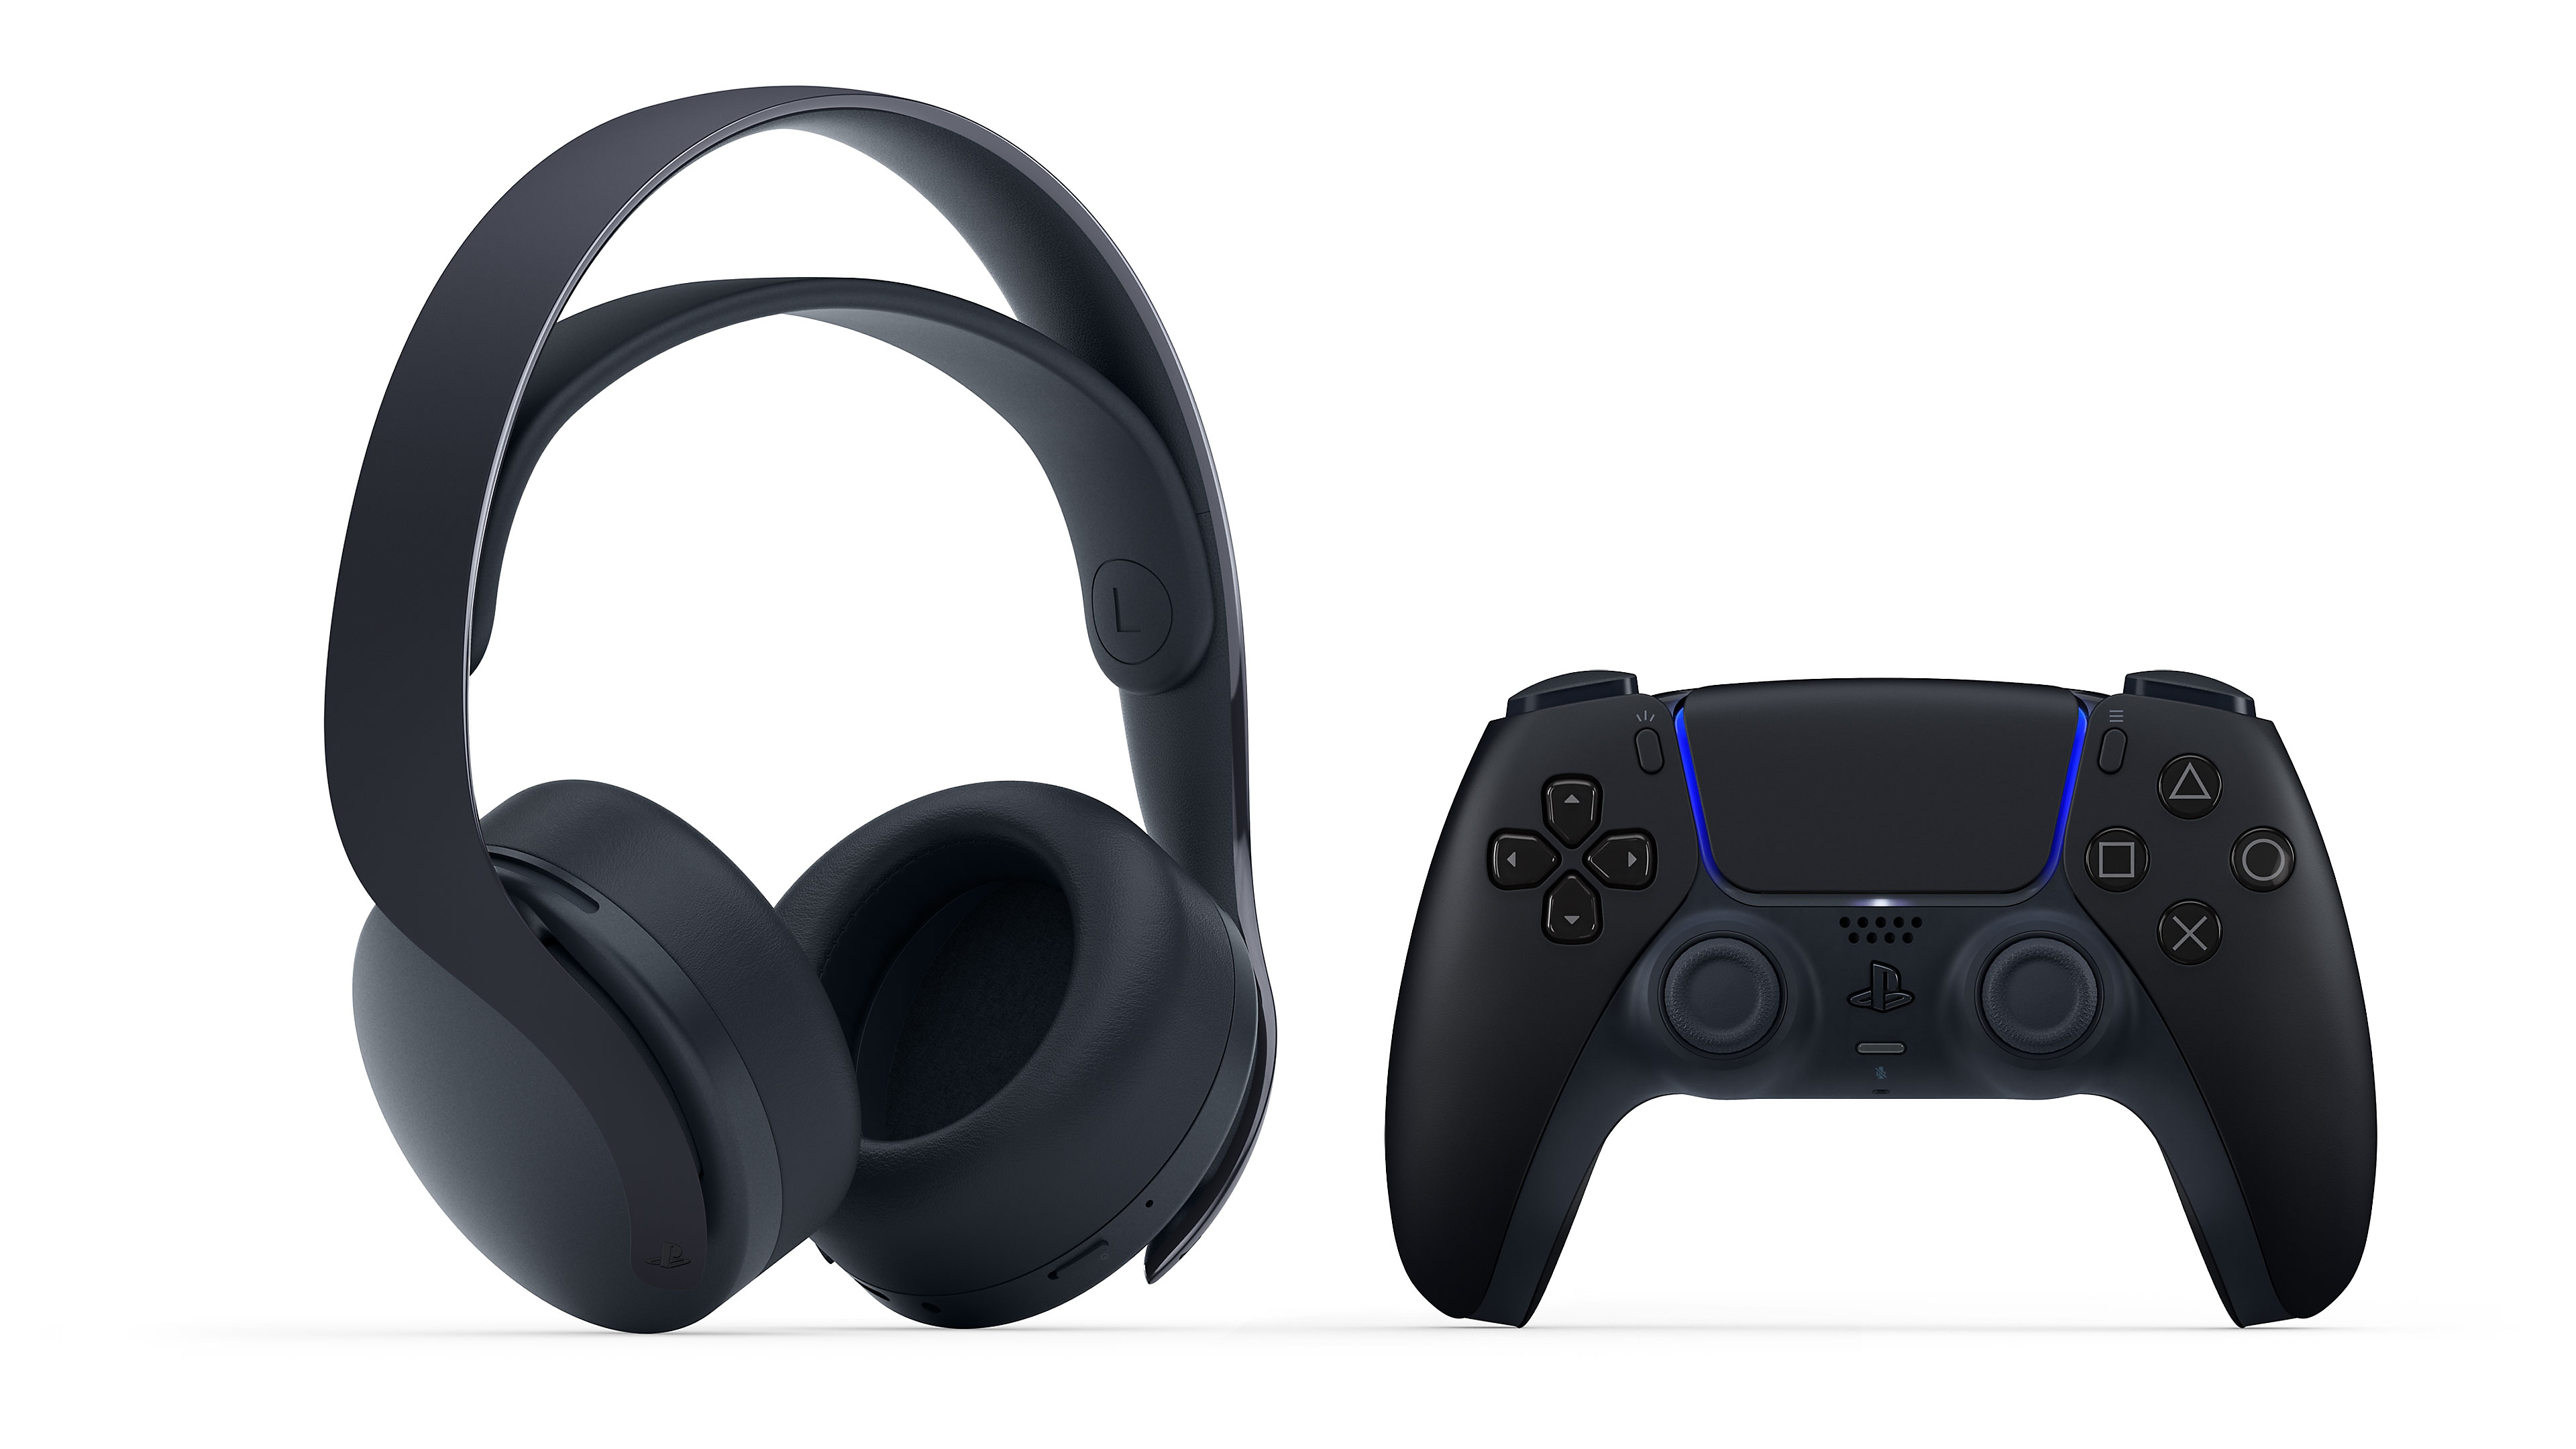 Midnight black headset and controller